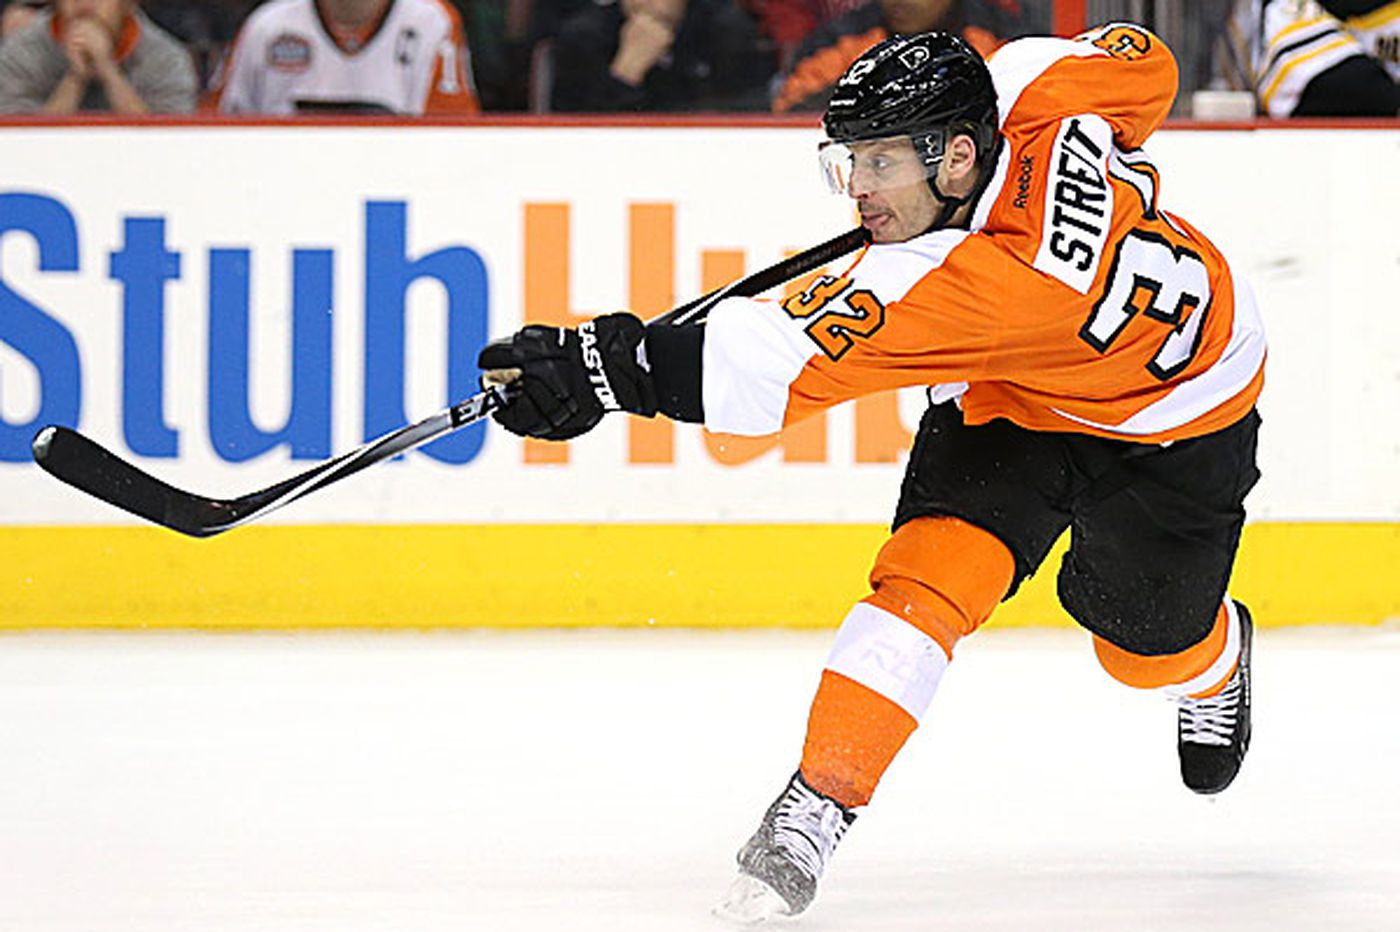 Defenseman Streit becoming an offensive asset for the Flyers